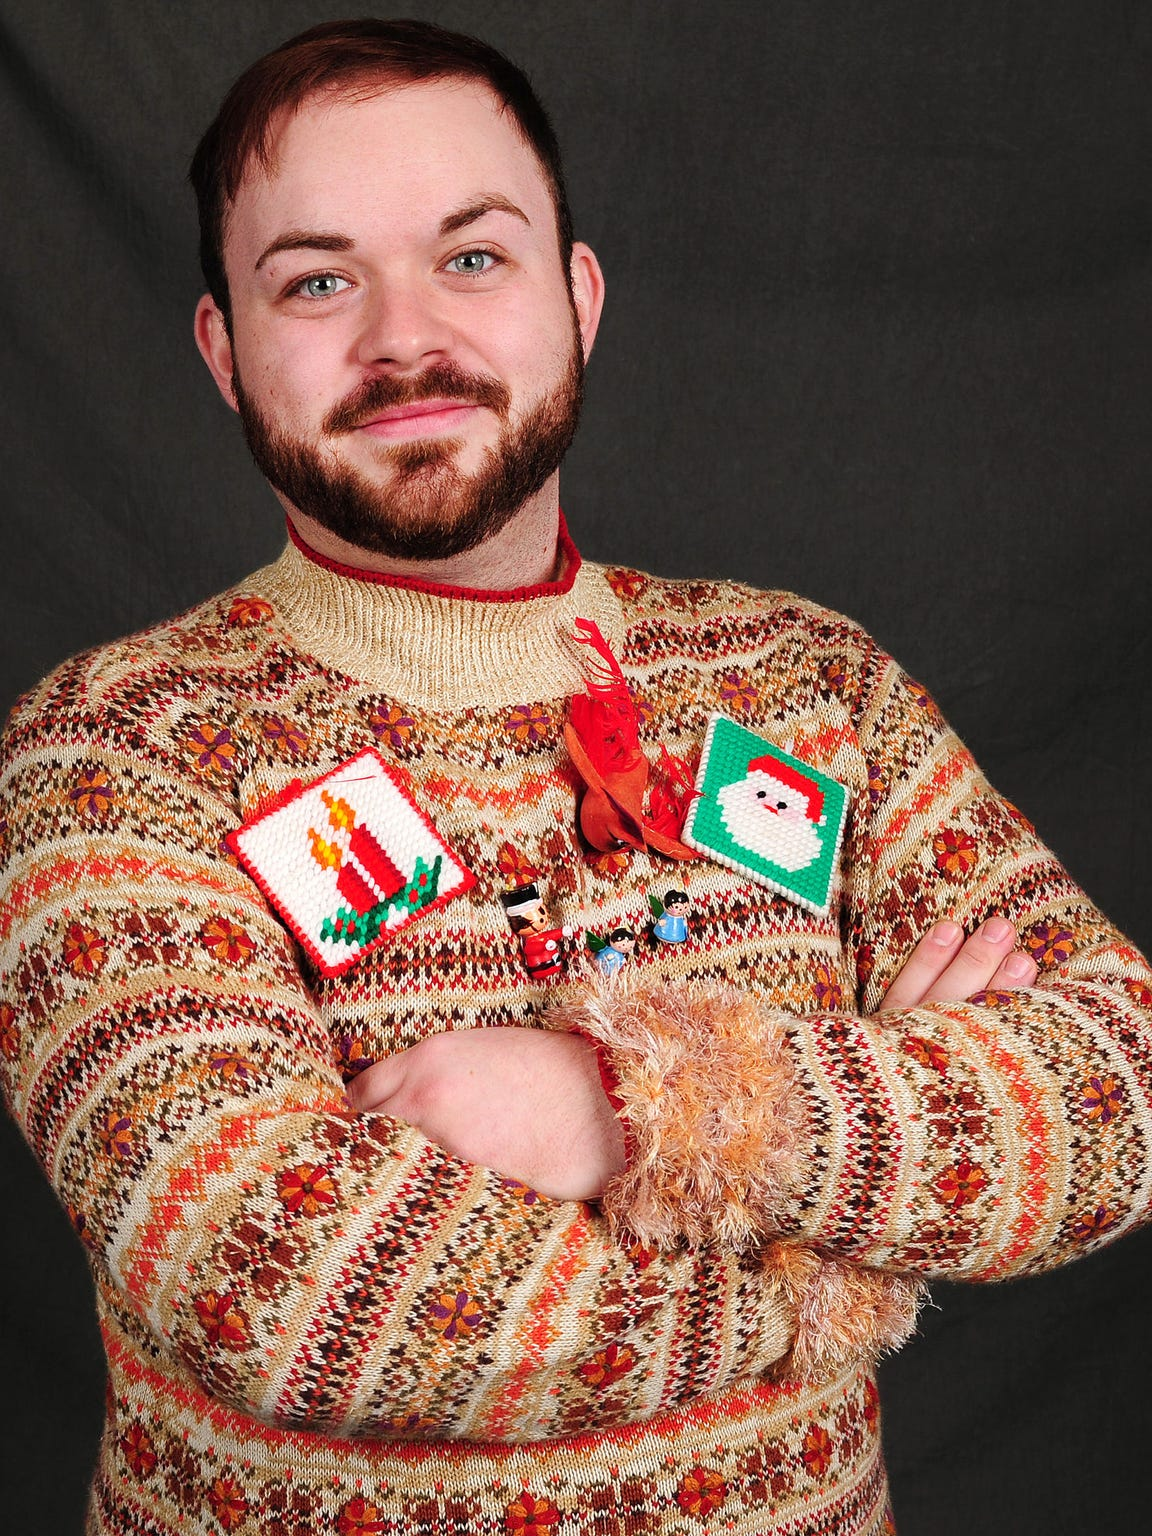 Tyler Atherton made his ugly holiday sweater with items